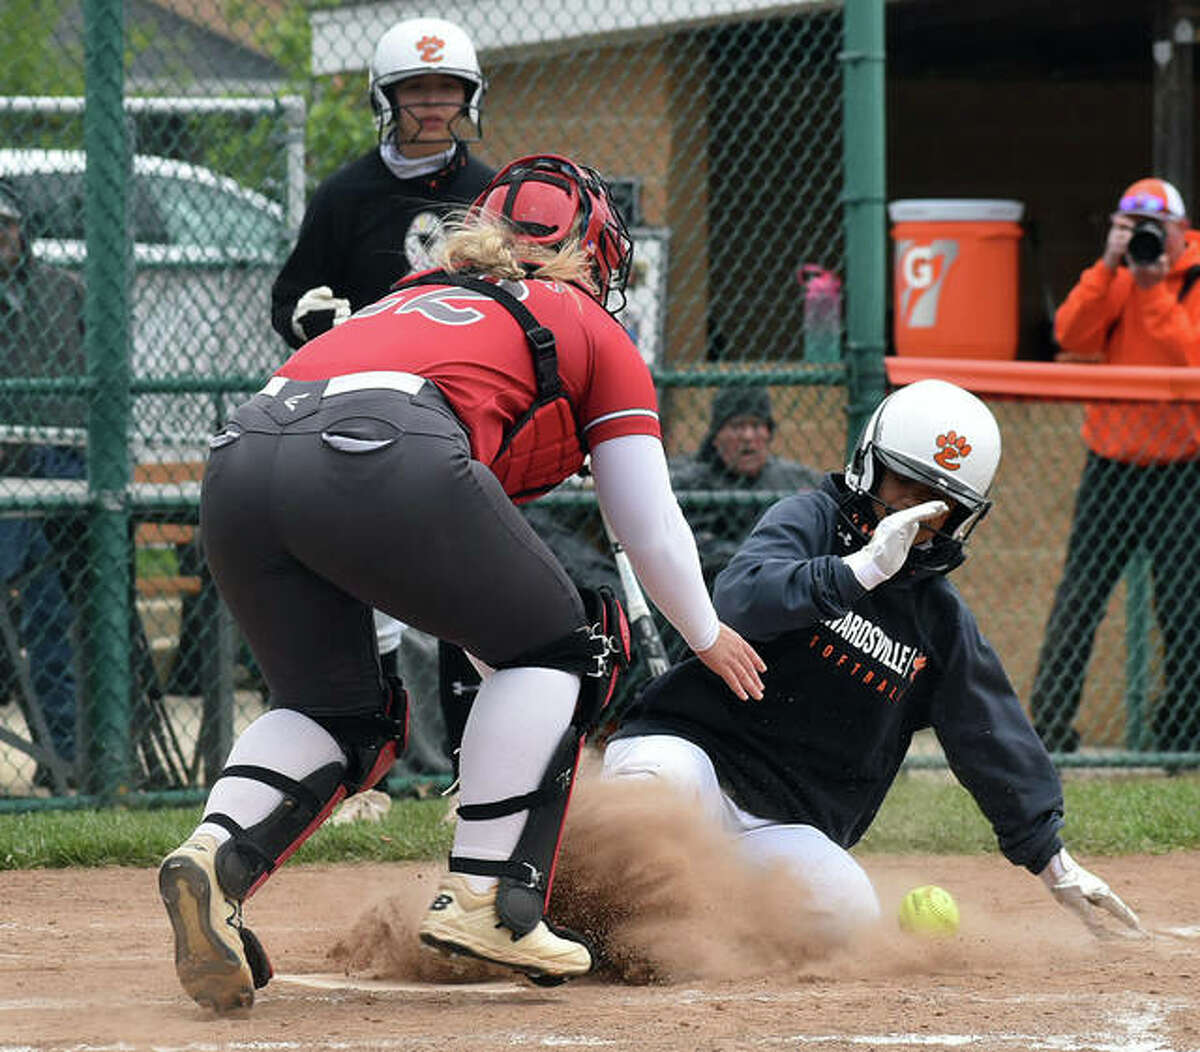 Edwardsville's Zoie Boyd slides safely into home as the throw eludes Alton catcher Lynna Fischer in the second inning of Saturday's game inside the District 7 Sports Complex.